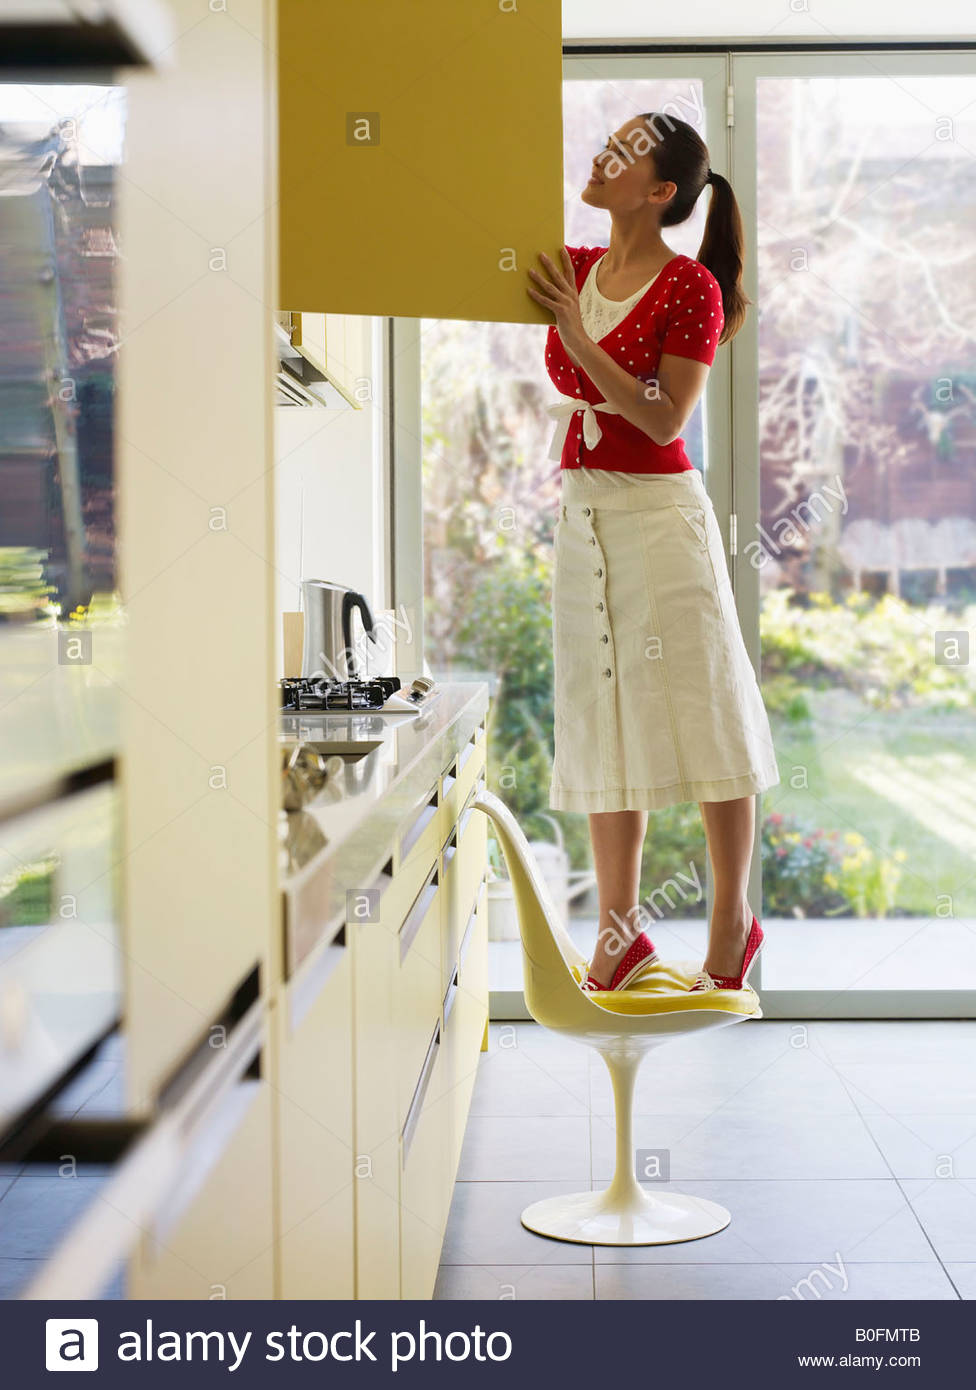 Young woman on chair looking in cupboard - Stock Image